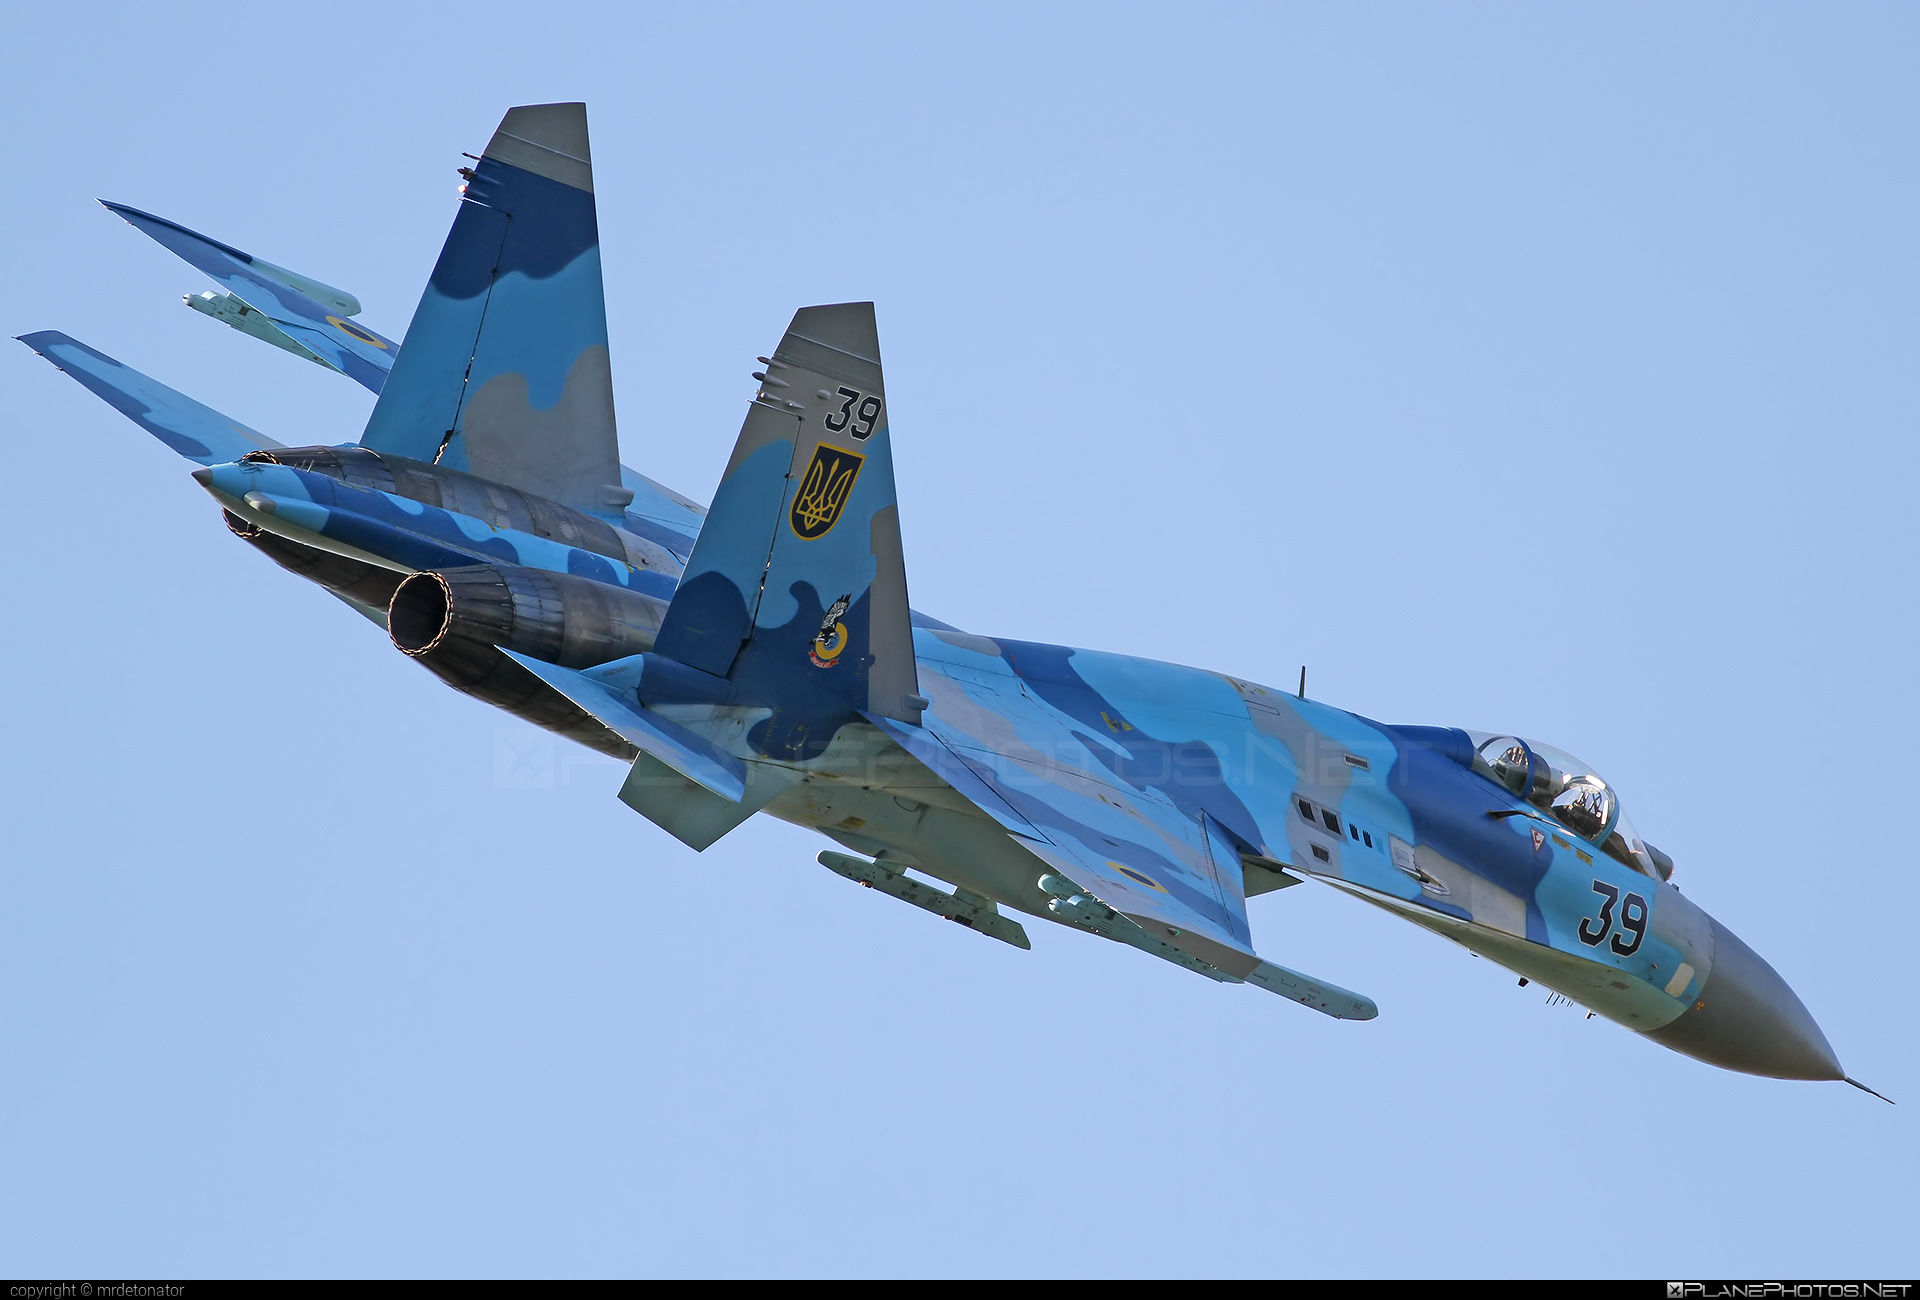 Sukhoi Su-27P - 39 operated by Povitryani Syly Ukrayiny (Ukrainian Air Force) #povitryanisylyukrayiny #radomairshow #radomairshow2013 #su27 #su27p #sukhoi #sukhoi27 #ukrainianairforce